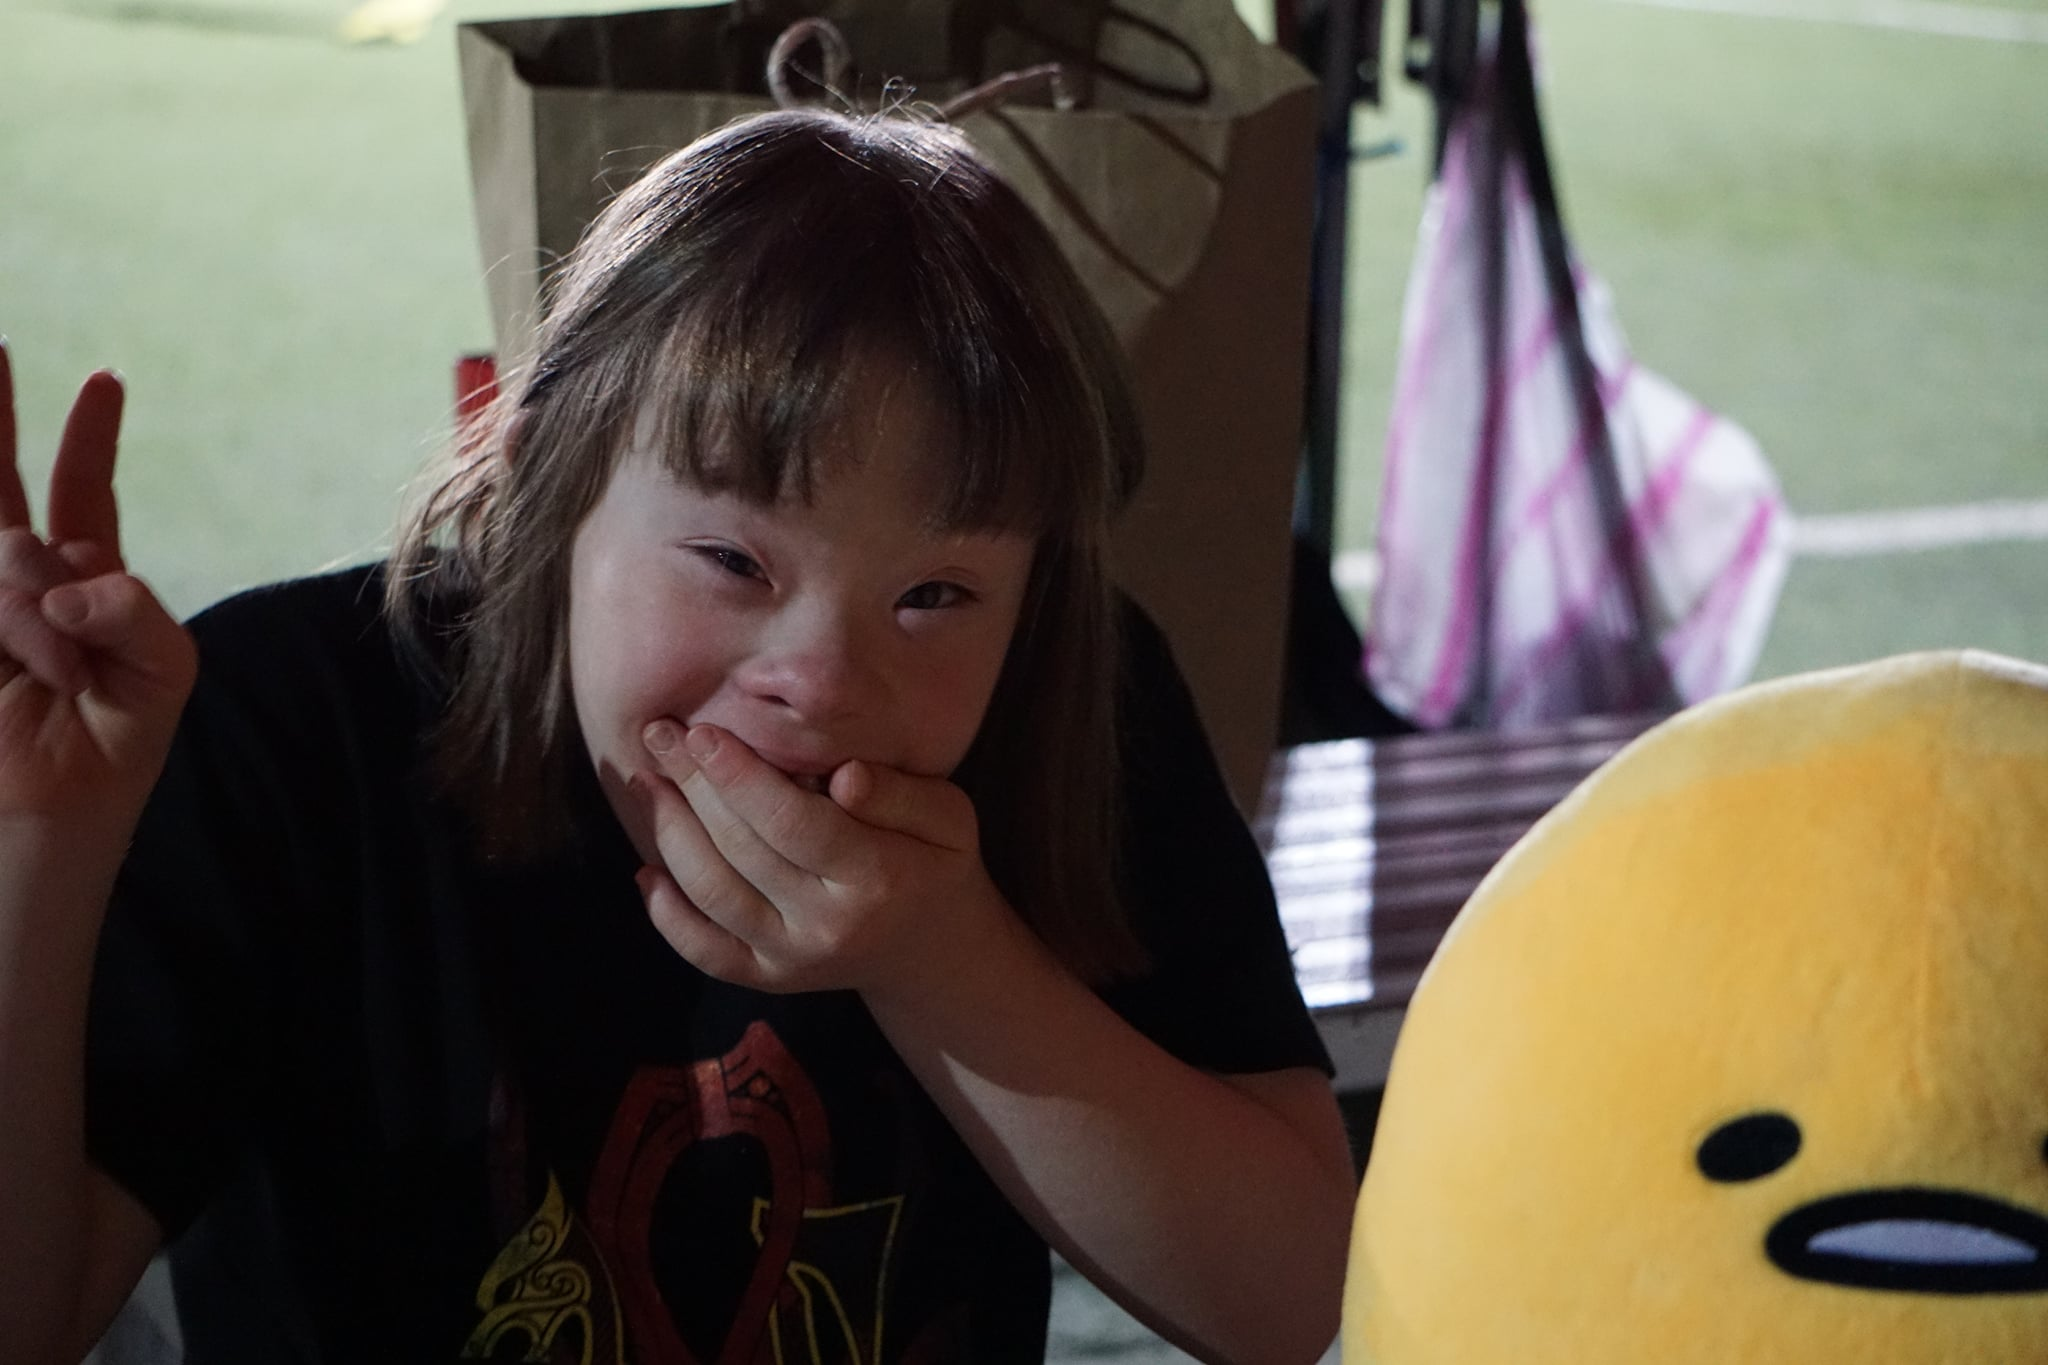 14 year old Semine Nielsen, daughter of Danish football coach Johnni. Semine has Down syndrome.